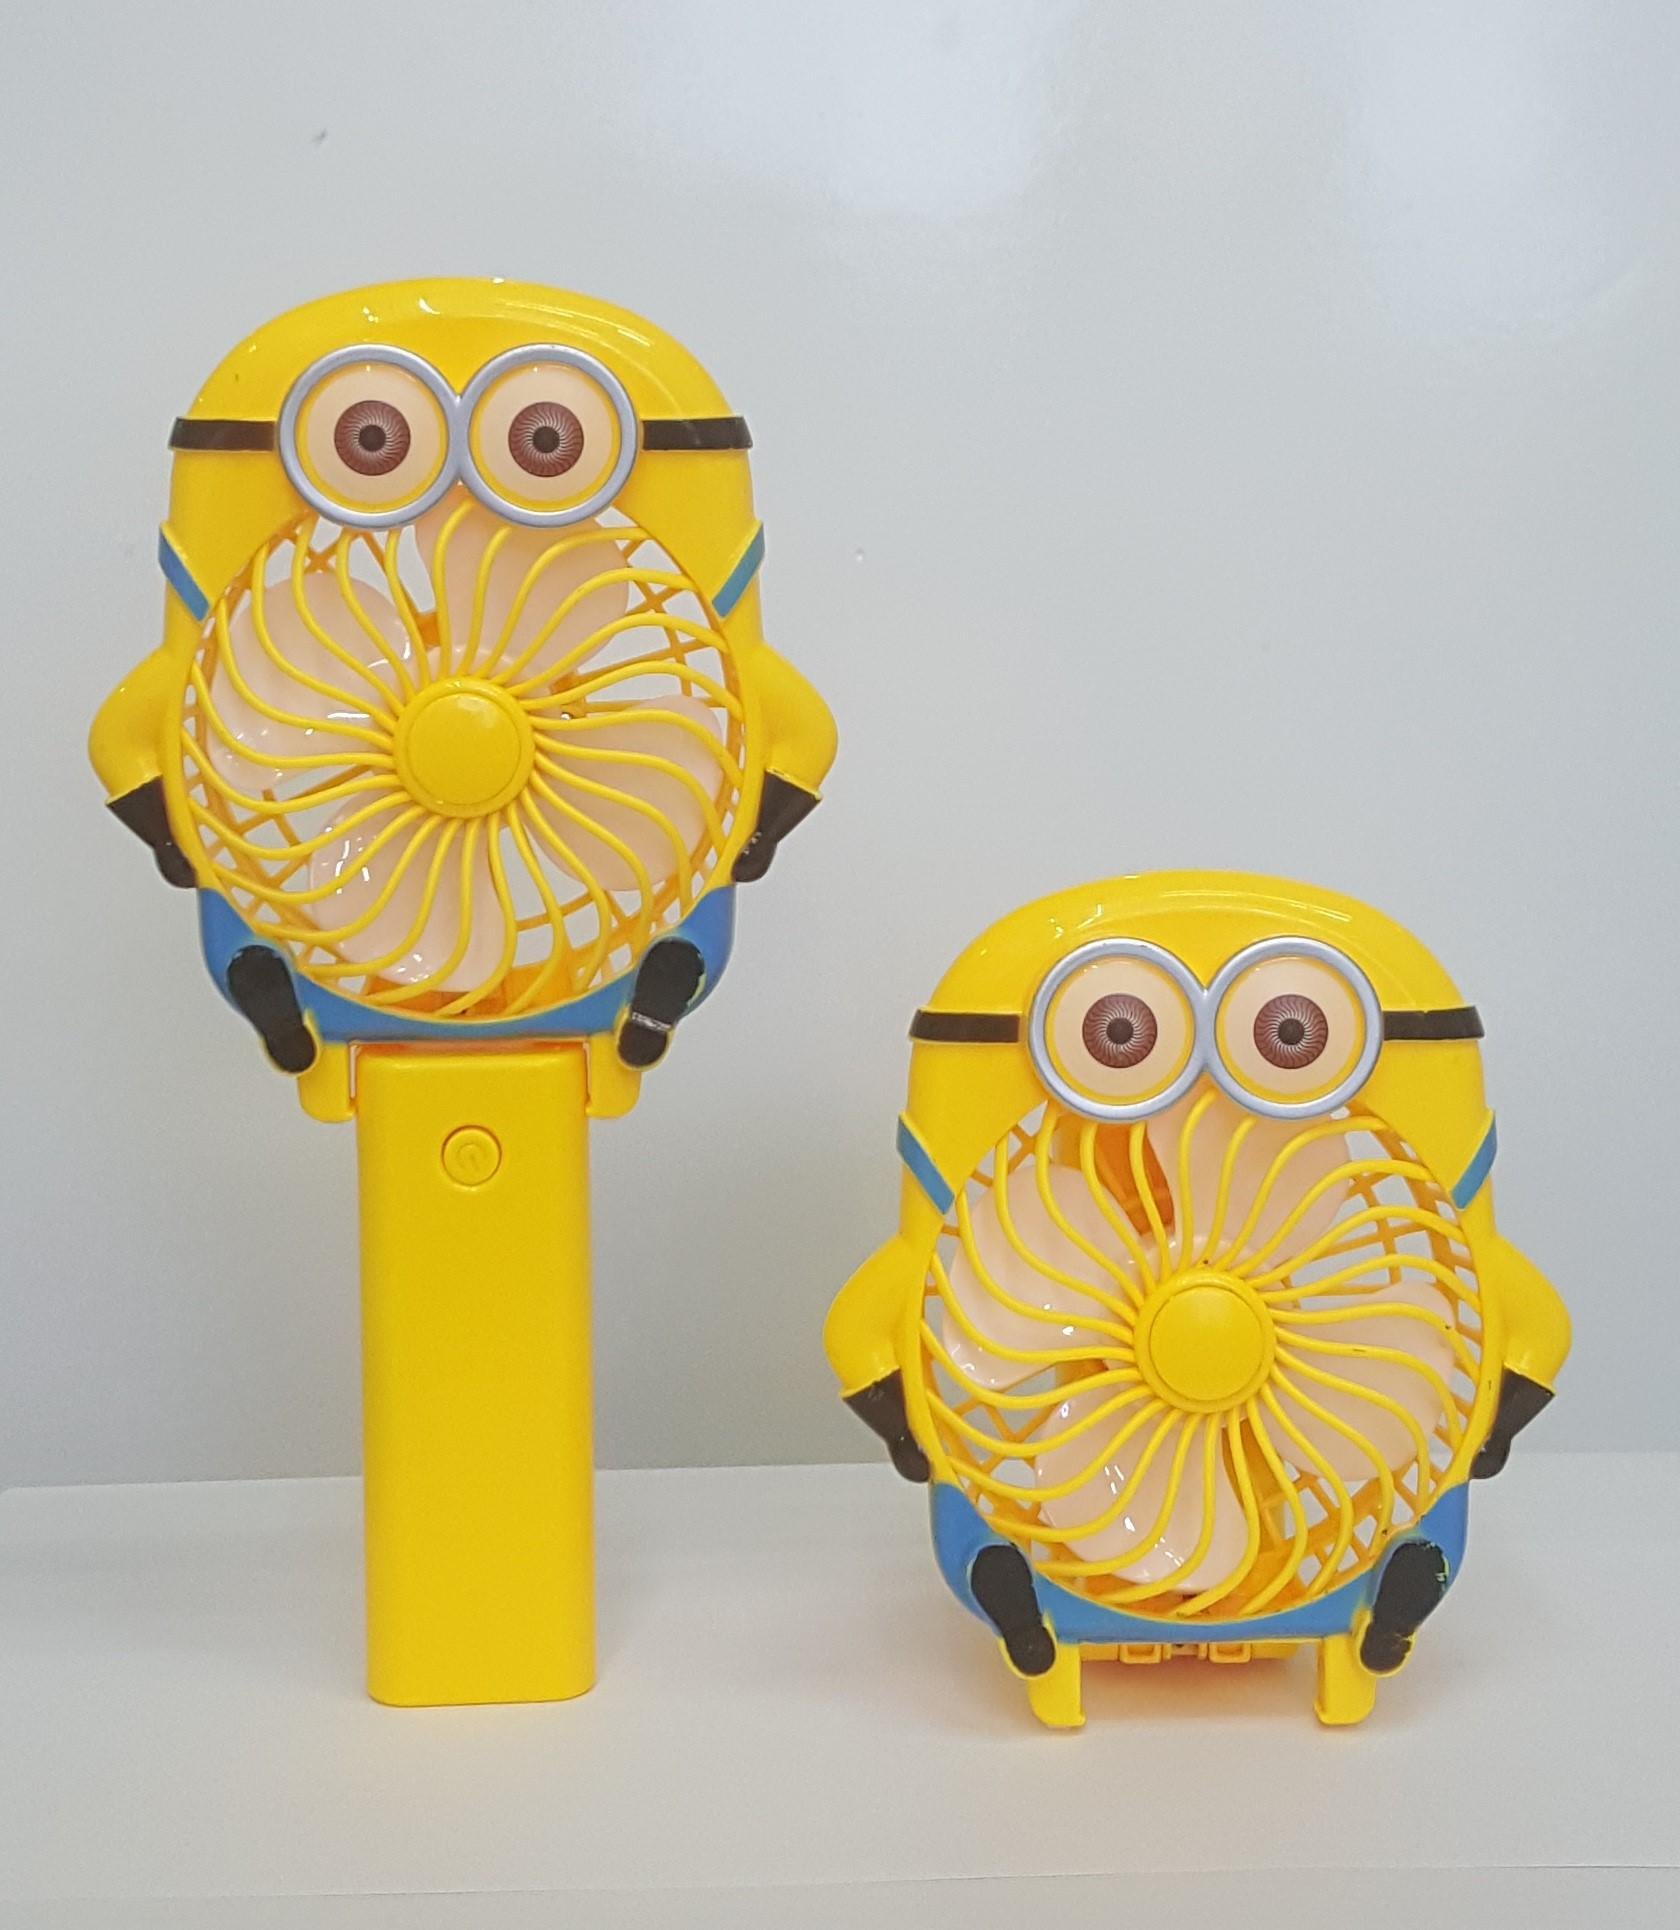 Paling di cari Kipas Angin Mini Portable Karakter Minion Travel Fresh Summer Desk Mini Fan